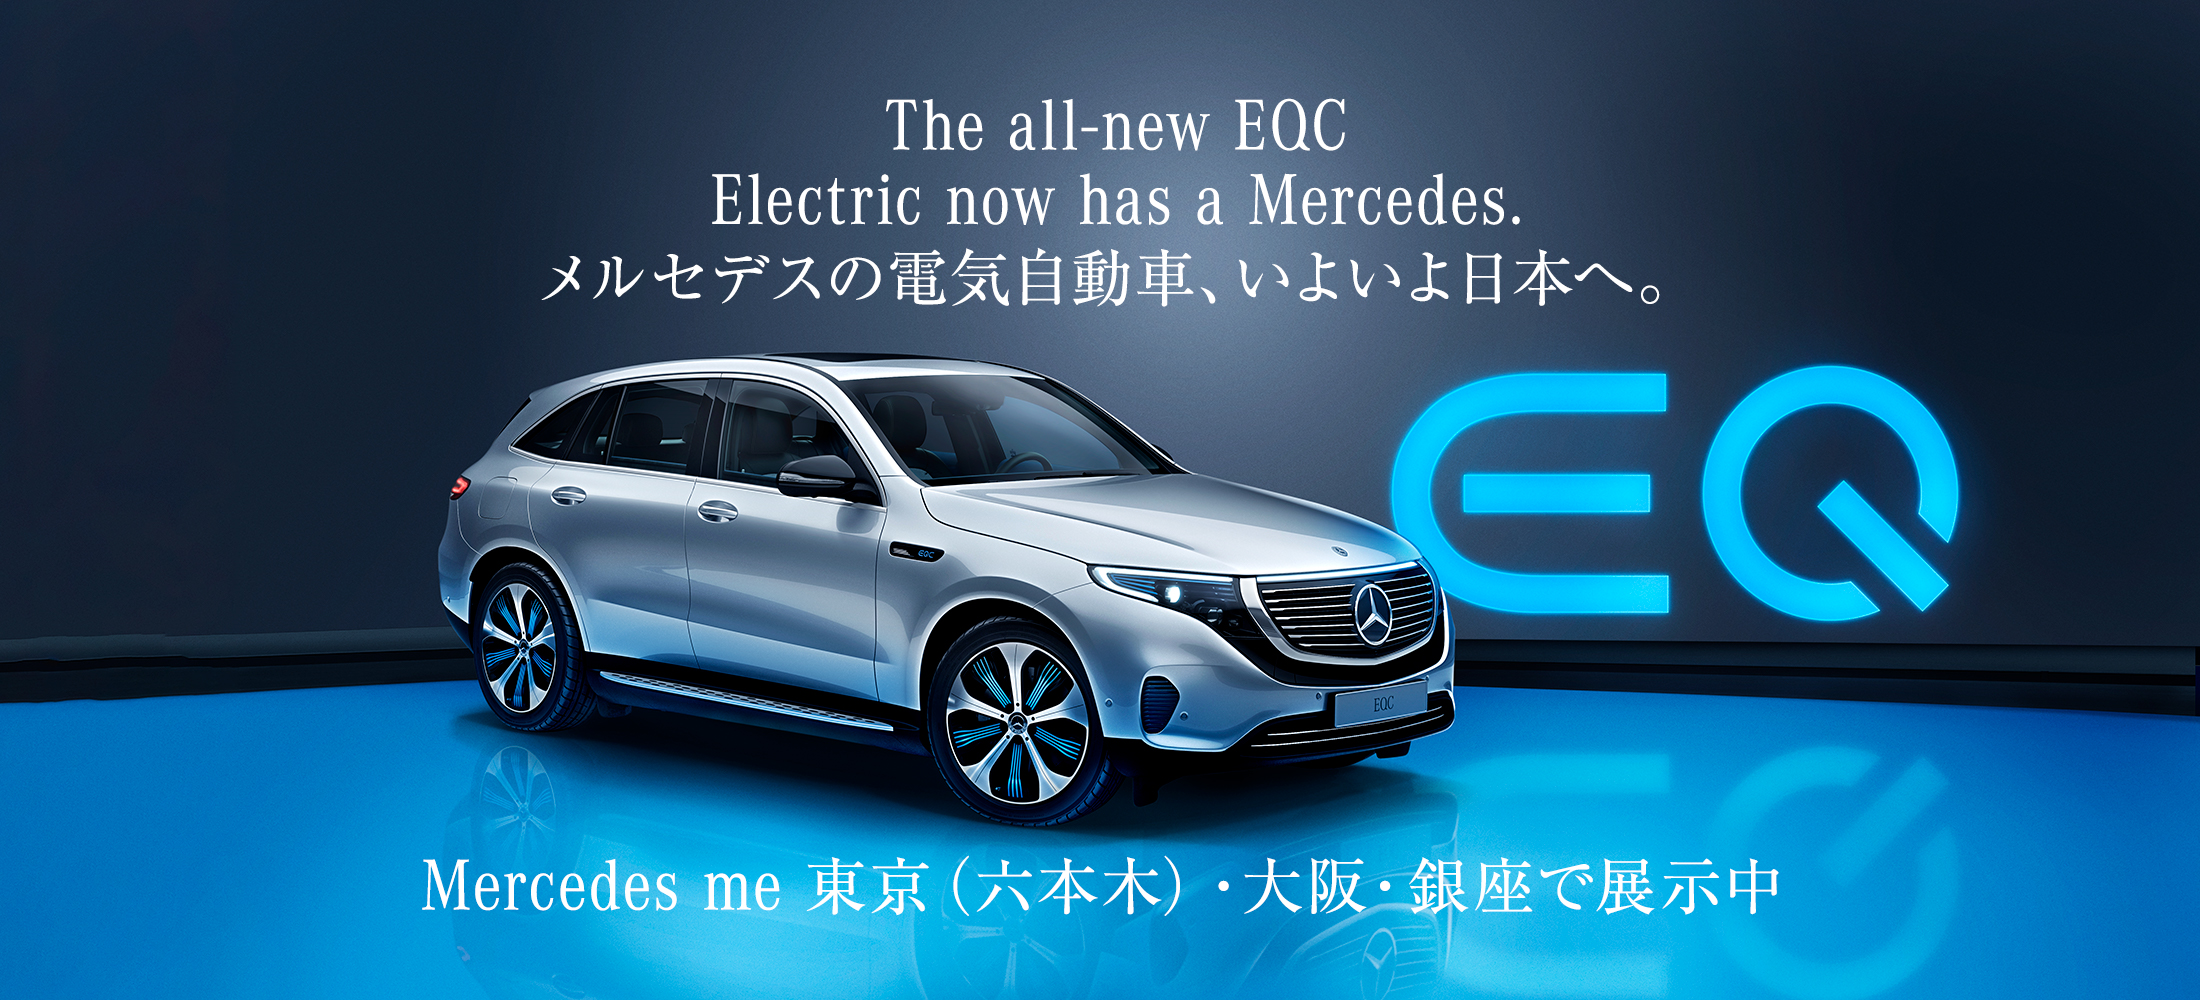 The all-new EQC Electric now has a Mercedes.メルセデスの電気自動車、いよいよ日本へ。